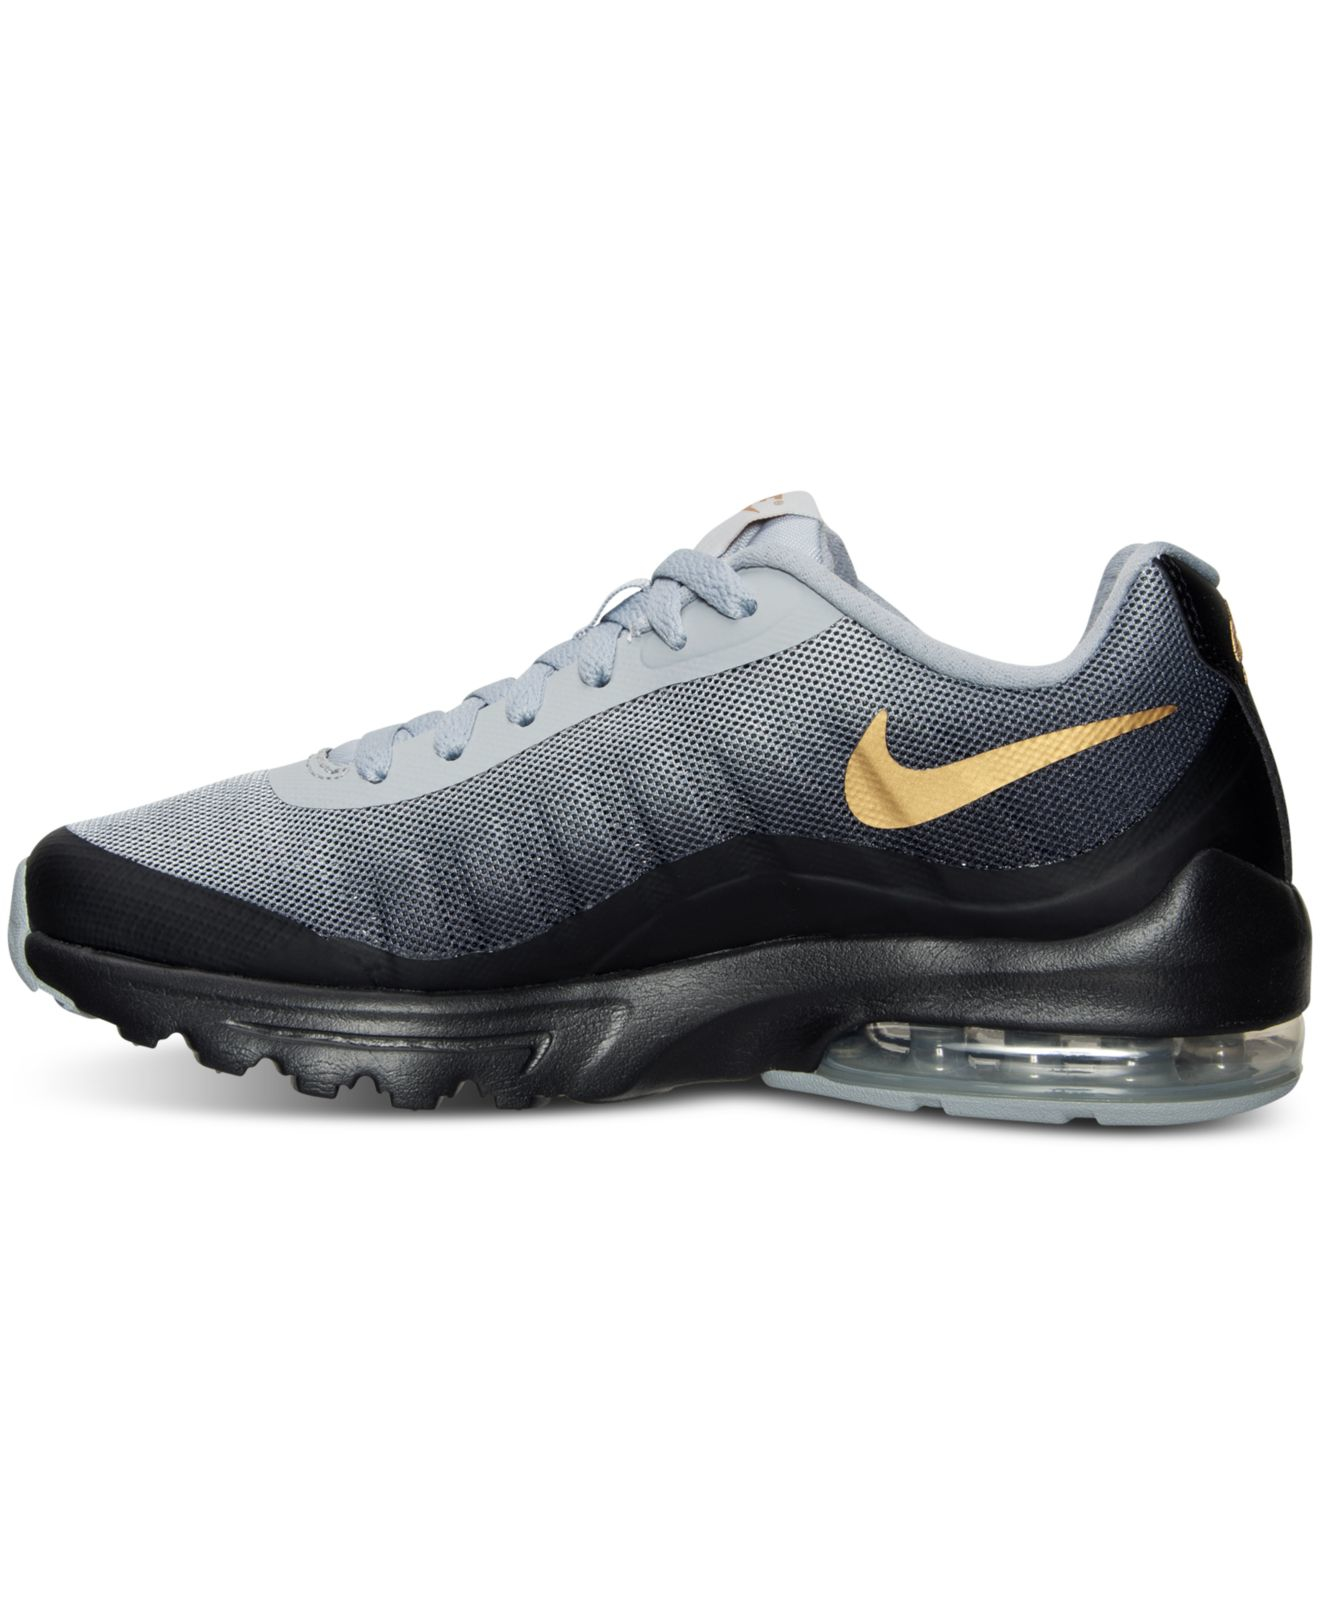 Nike Nike Air Max Invigor Print (Port WineWolf Grey) Women's Classic Shoes from 6pm | Shop